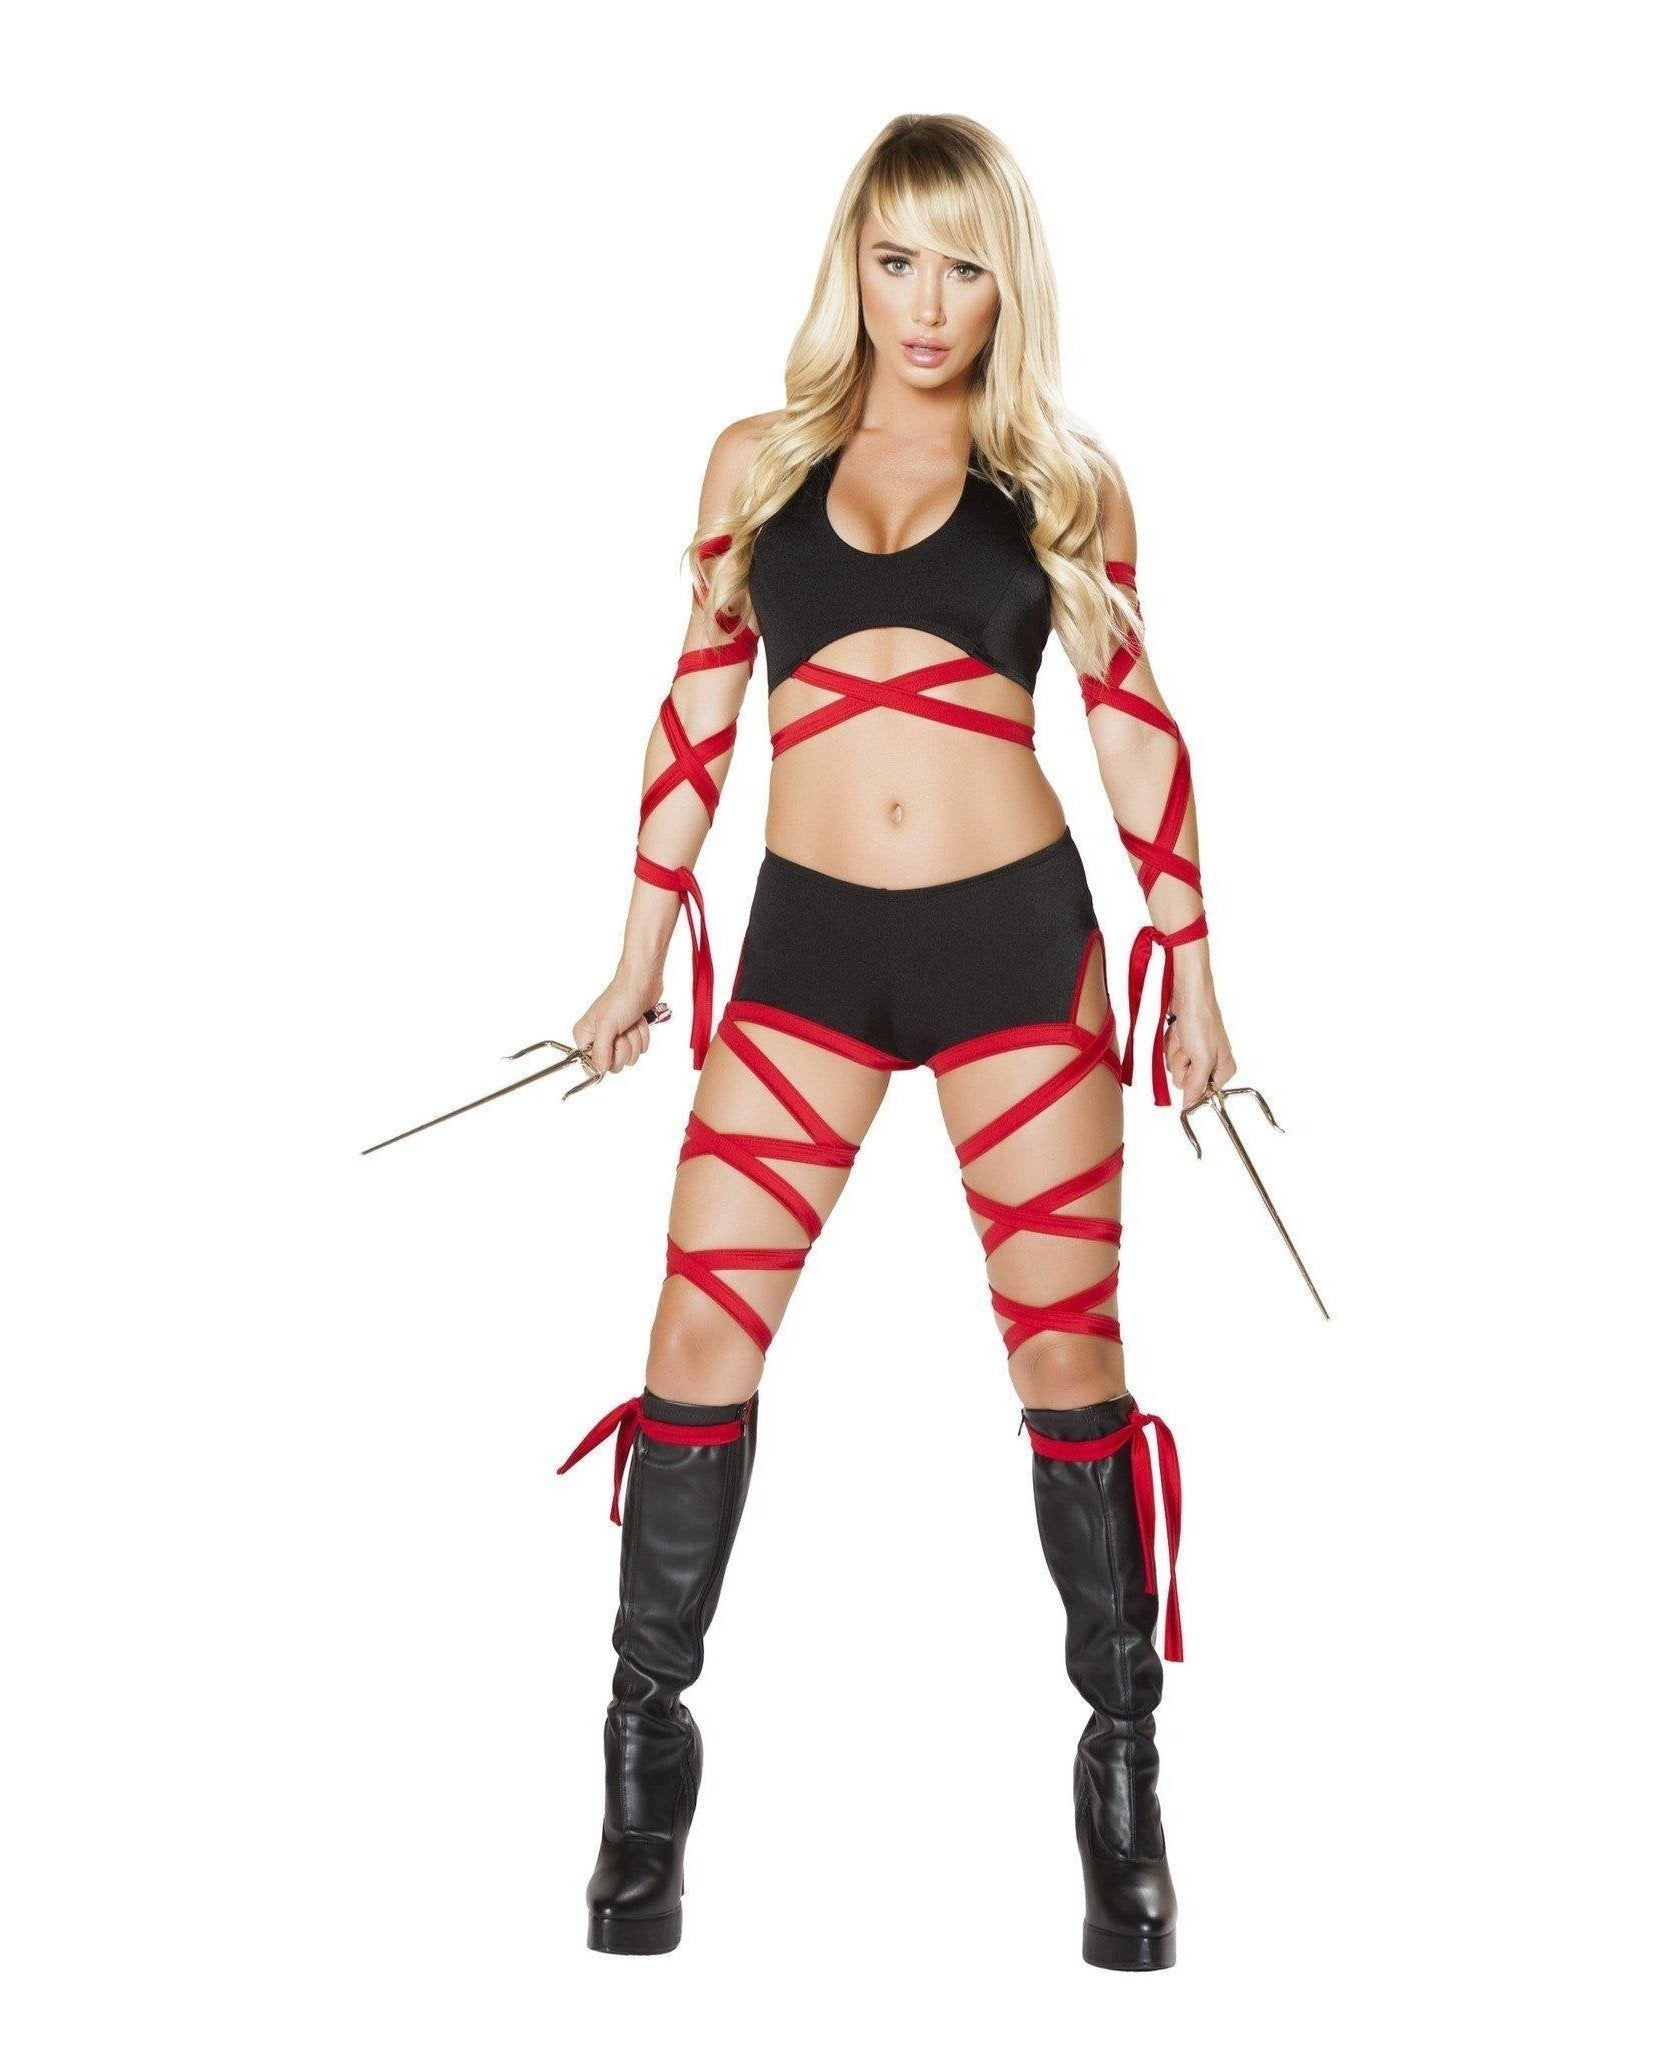 Deadly Ninja Assassin-Costumes-Roma Costume-Large-Black/Red-Nakees